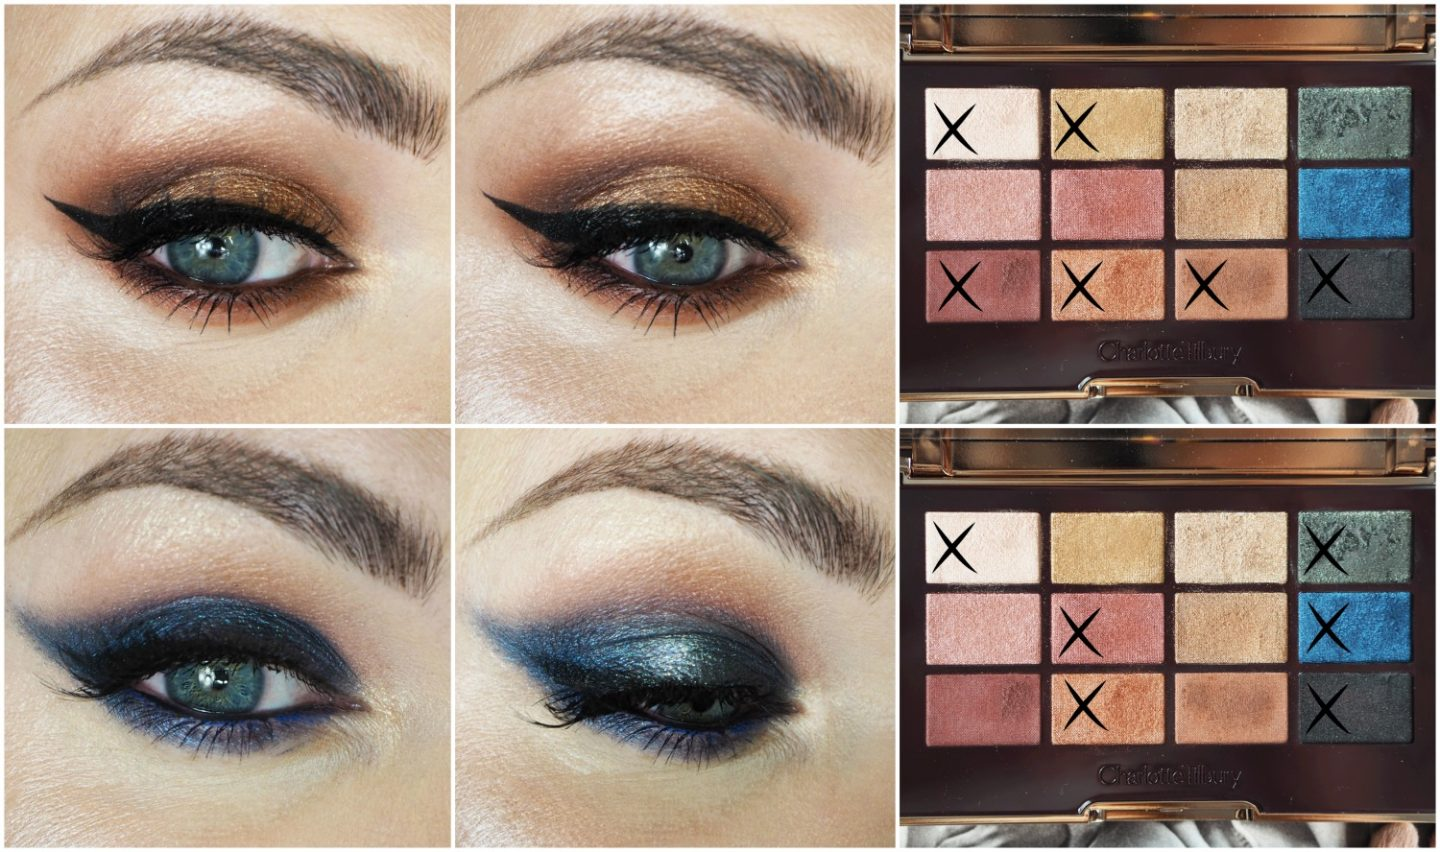 Charlotte Tilbury icons eyeshadow palette eye makeup looks and tutorial